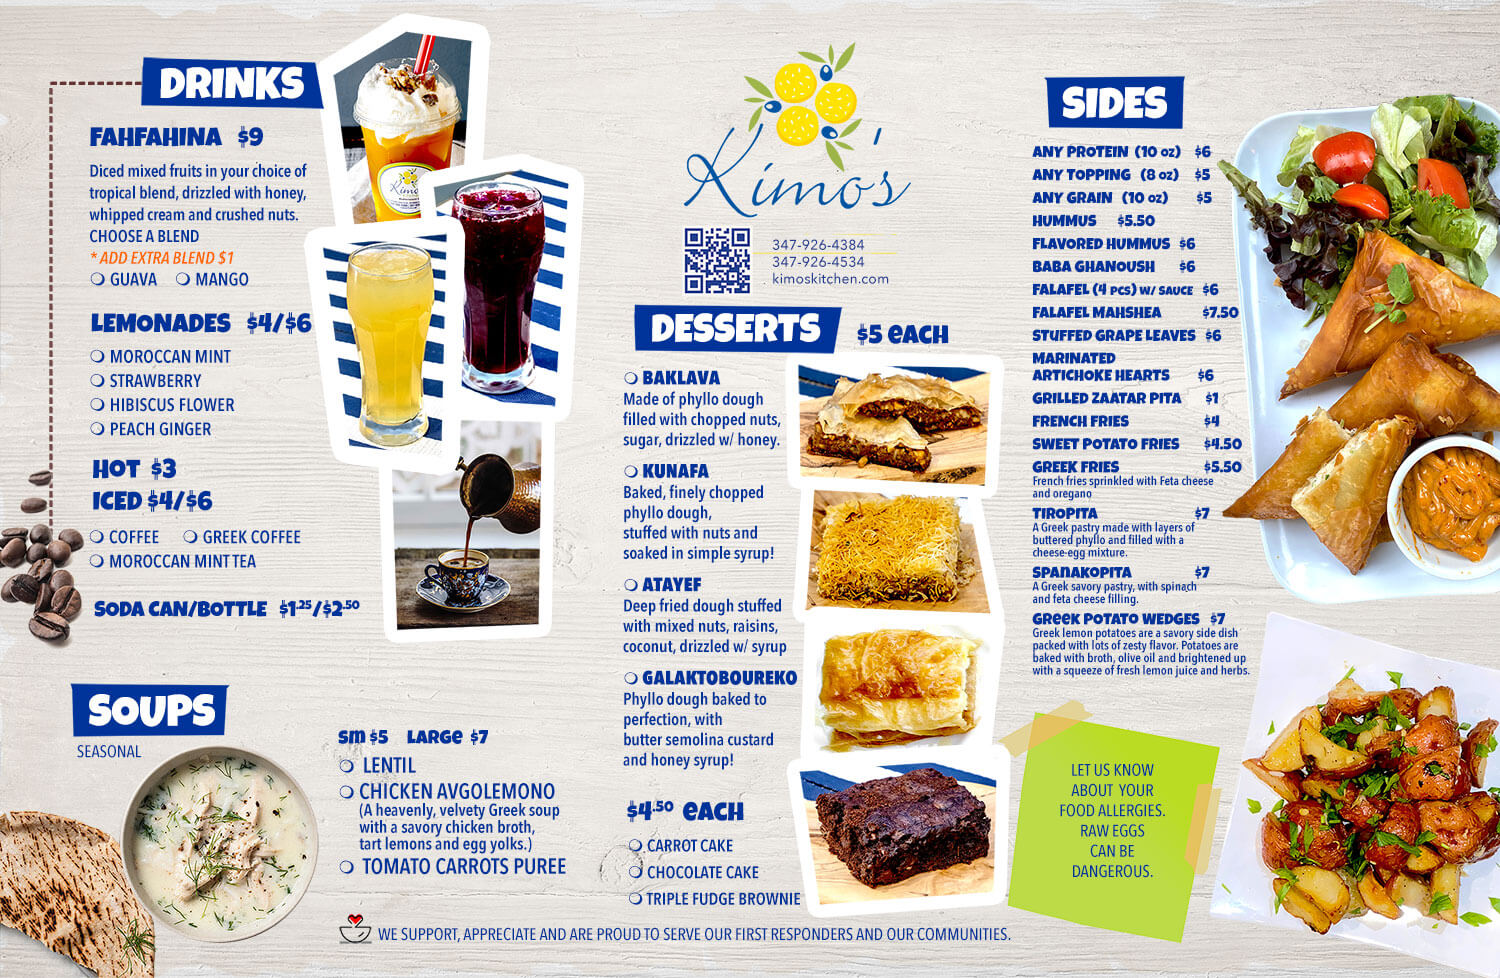 Kimo's Drinks and Desserts